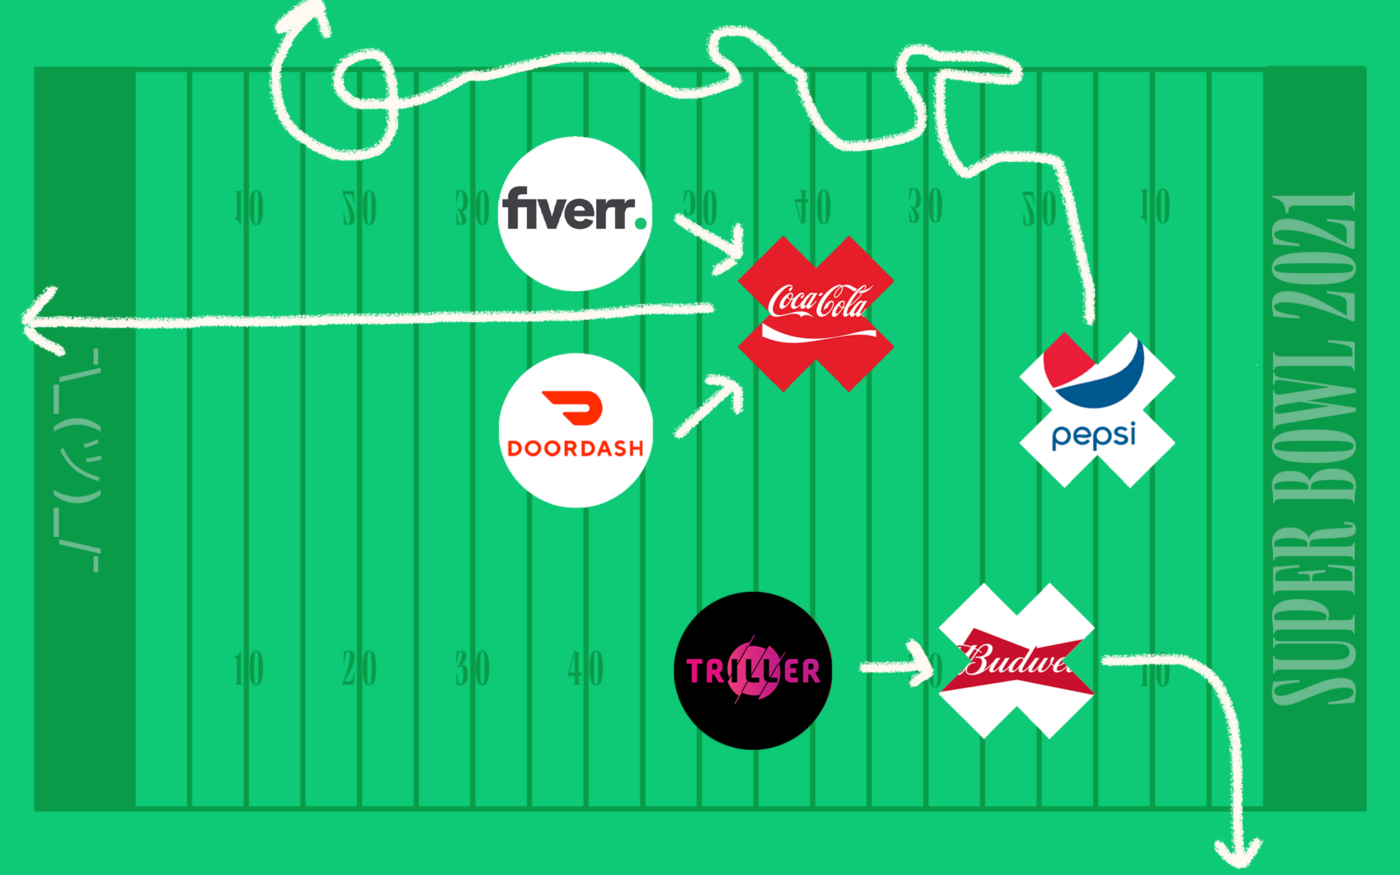 Logos of Fiverr, Coca-Cola, Doordash, Pepsi, Triller, and Budweiser as O's and X's on a football play